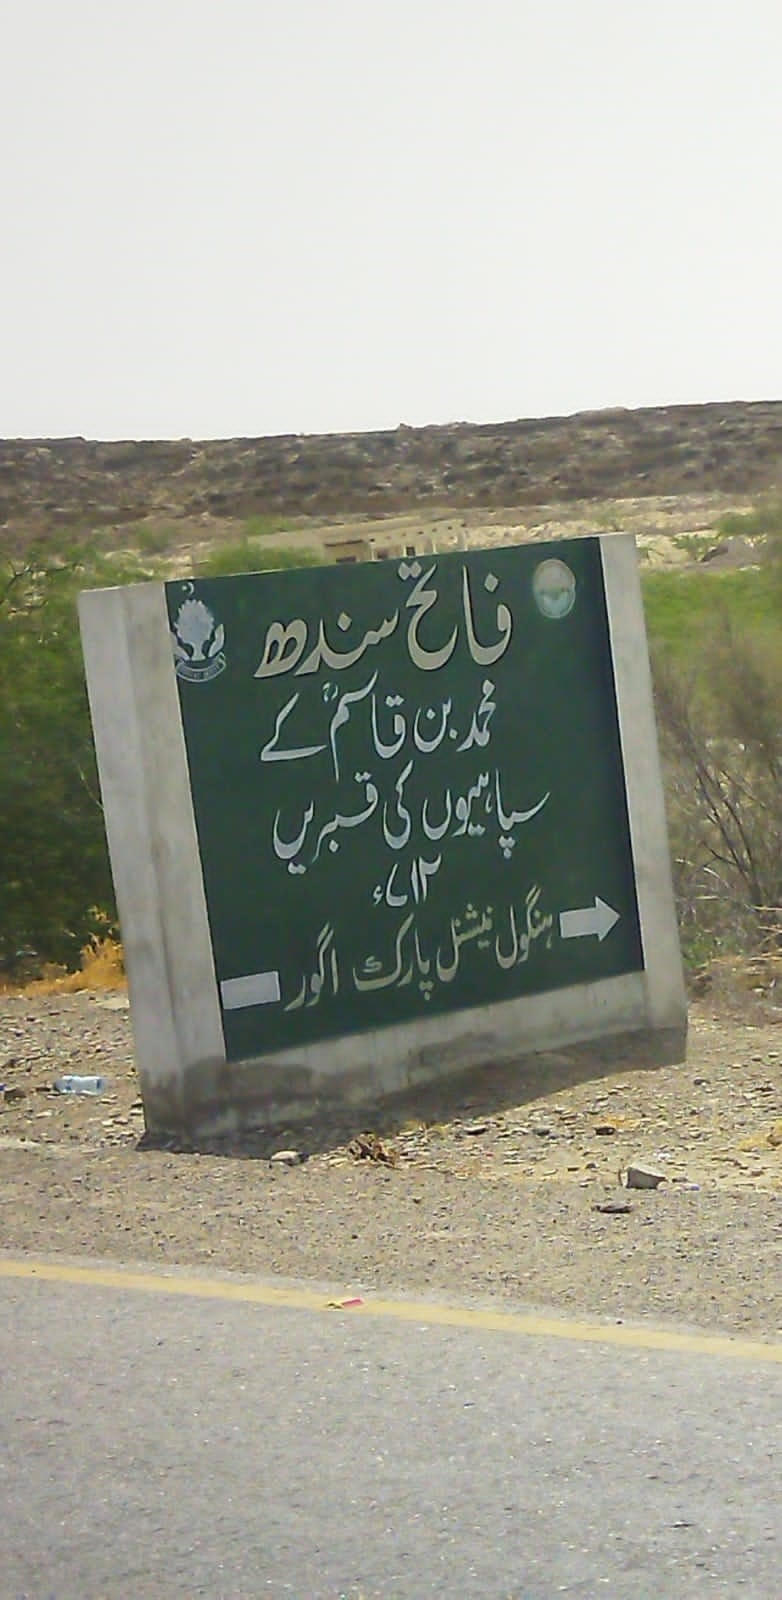 In Hingol National Park the graves of soldiers from Mohammad Bin Qasim's army who conquered Sind in 712 H.